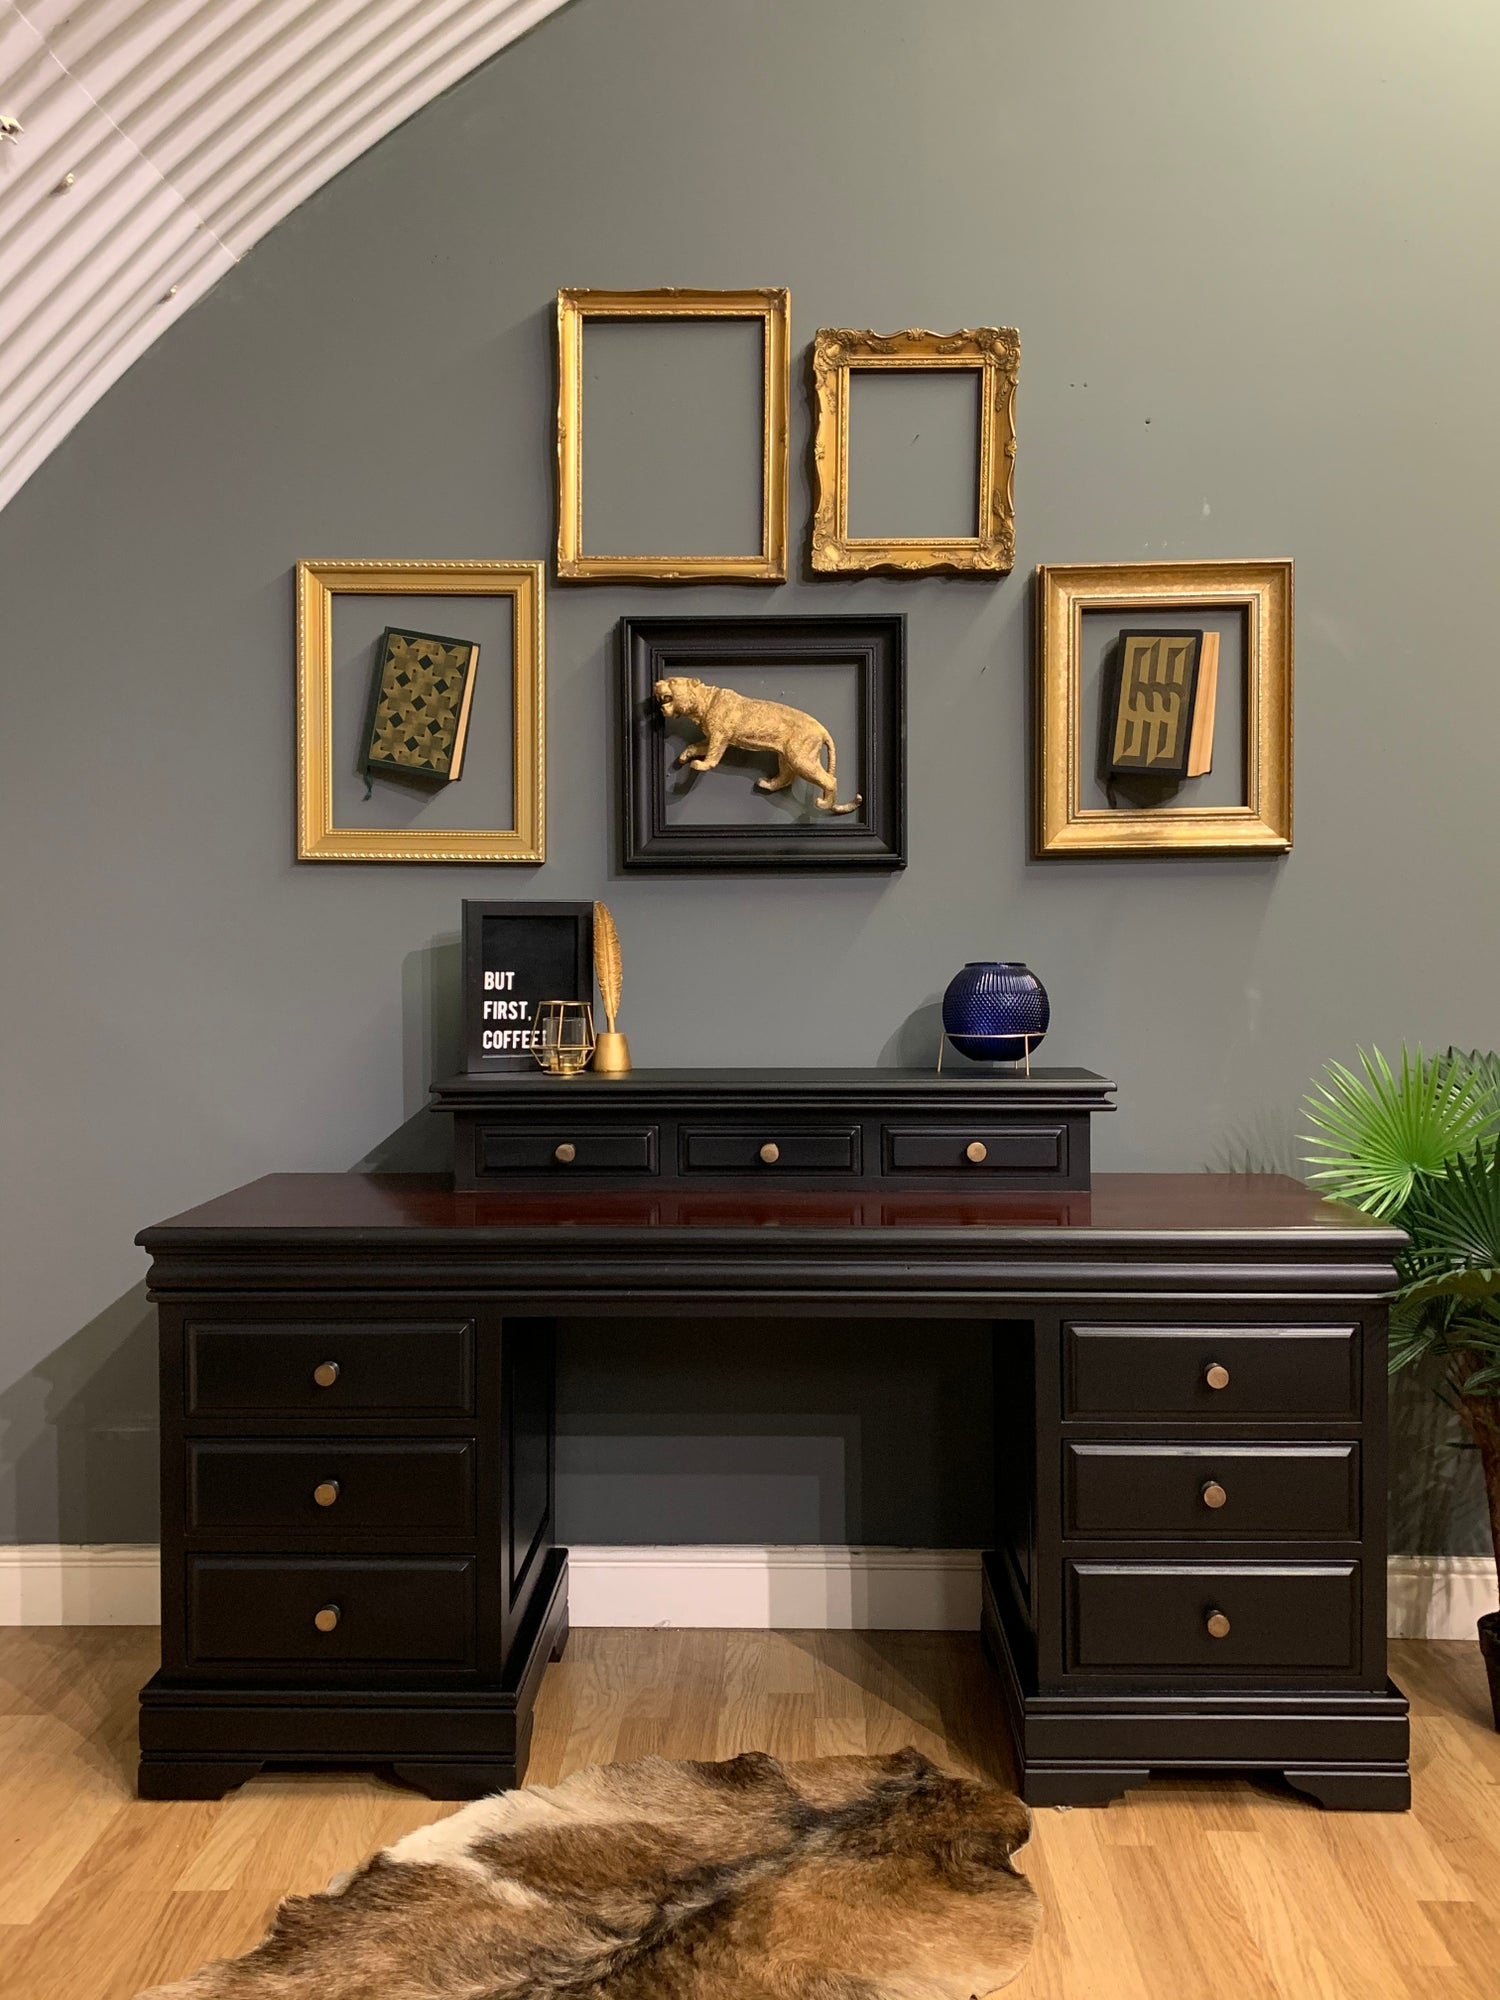 Image of Black and mahogany desk / dressing table